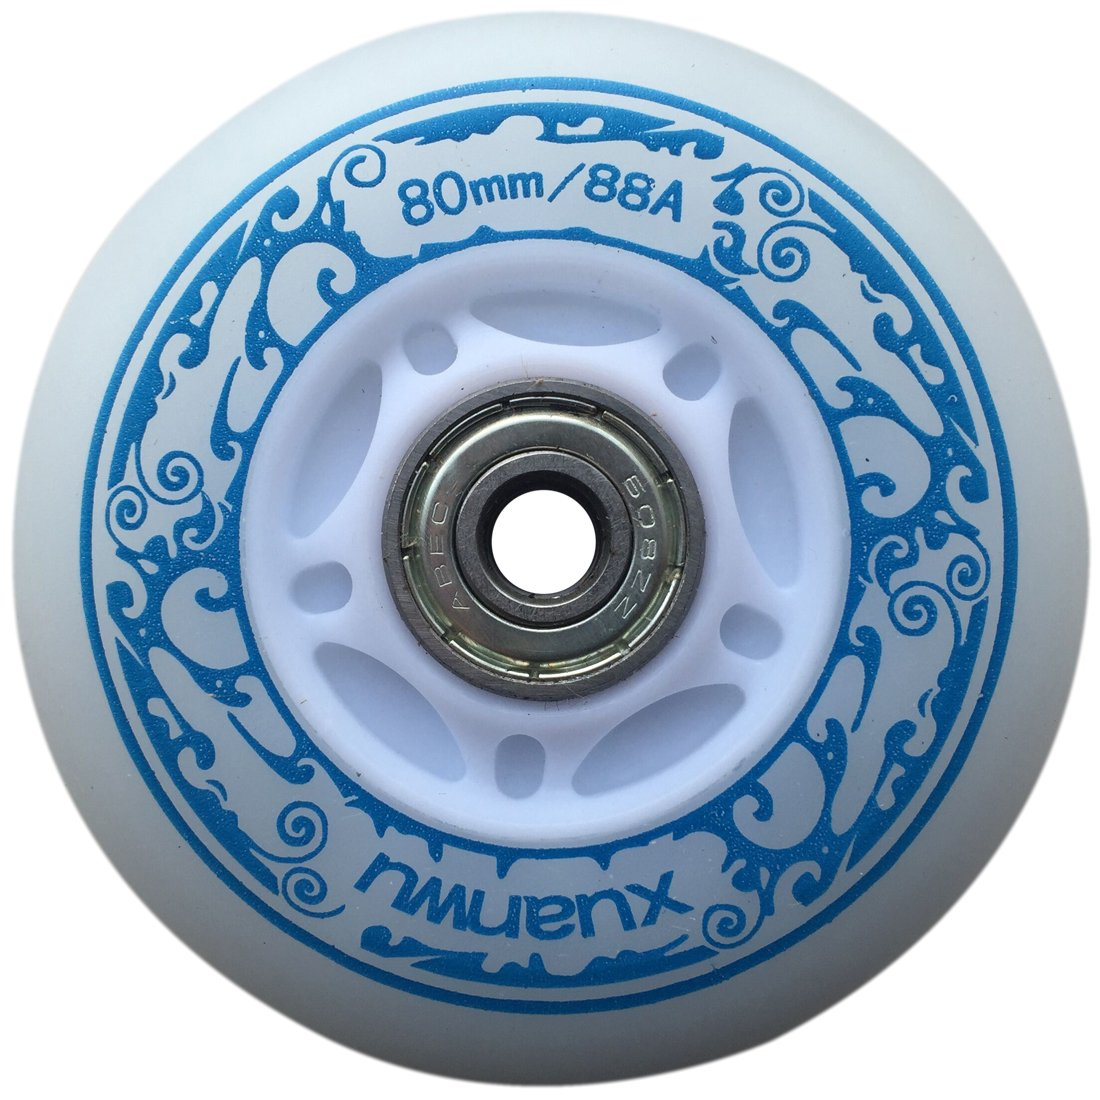 you-beat-you-land Light Up Led Inline Skates Pu Wheels Outdoor and Indoor Rubber Wheels Pack of 4 Blue-72mm by you-beat-you-land